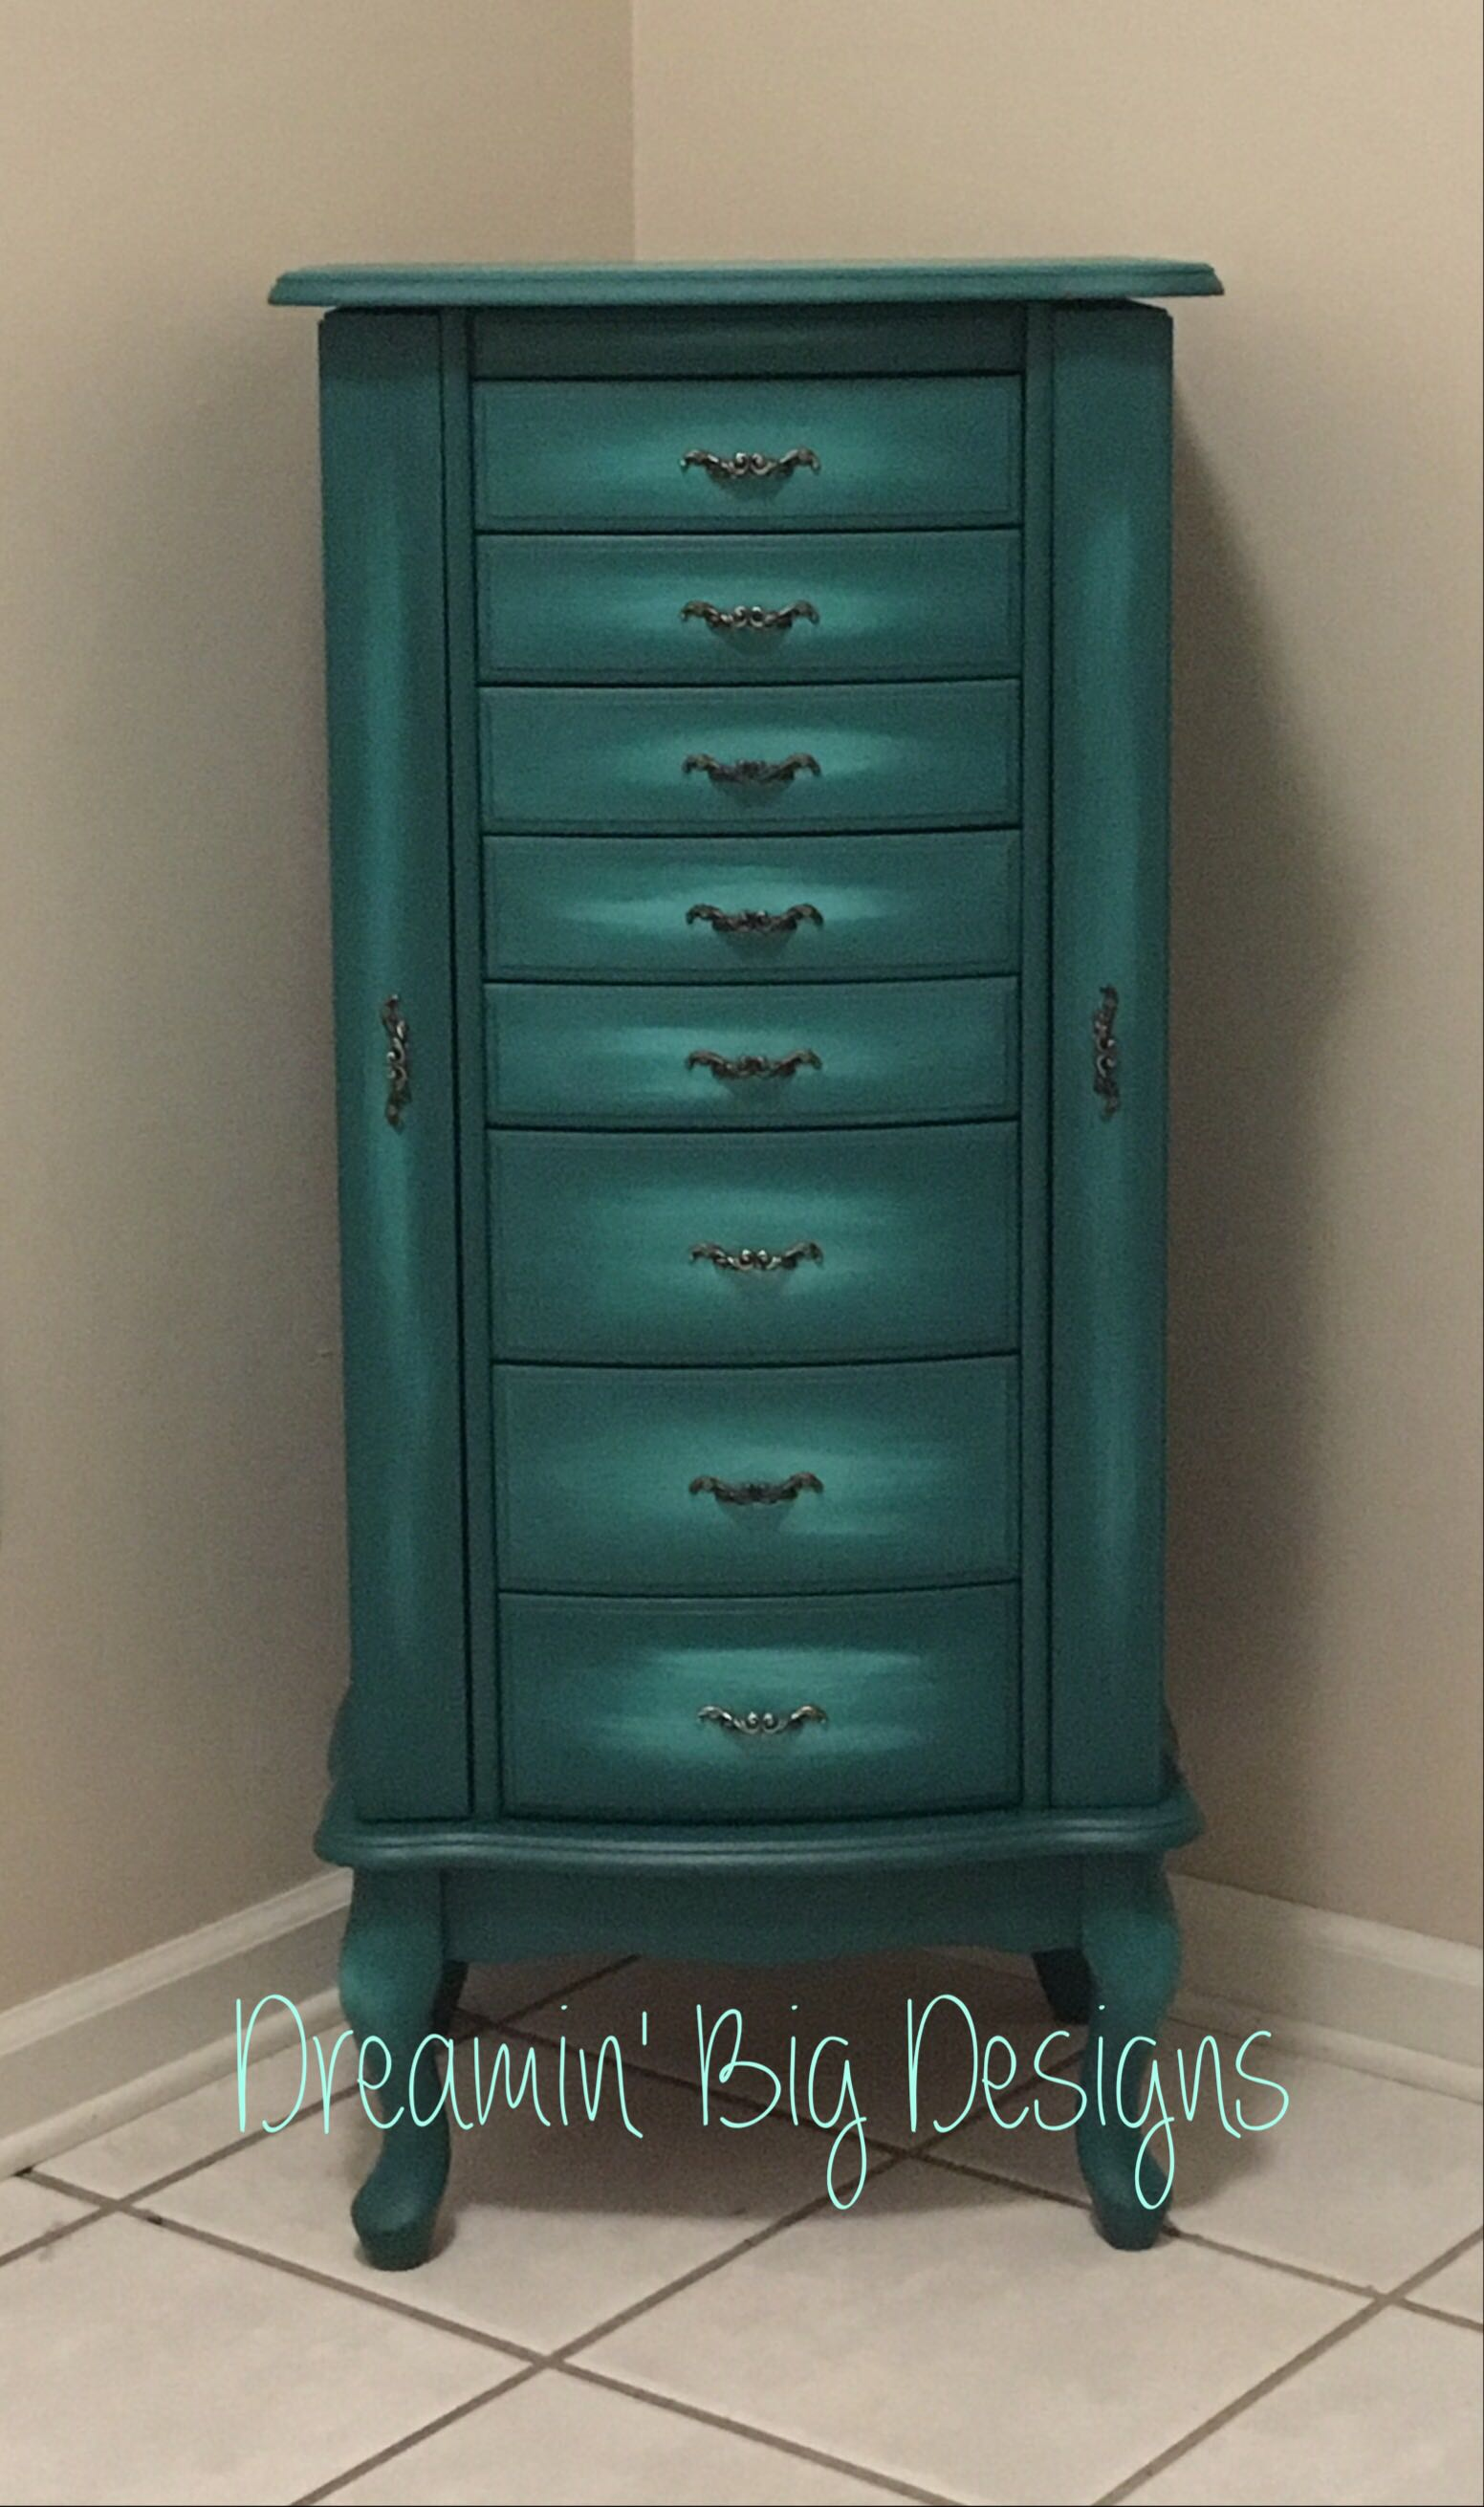 Caribbean Waters Hand Painted Jewelry Armoire